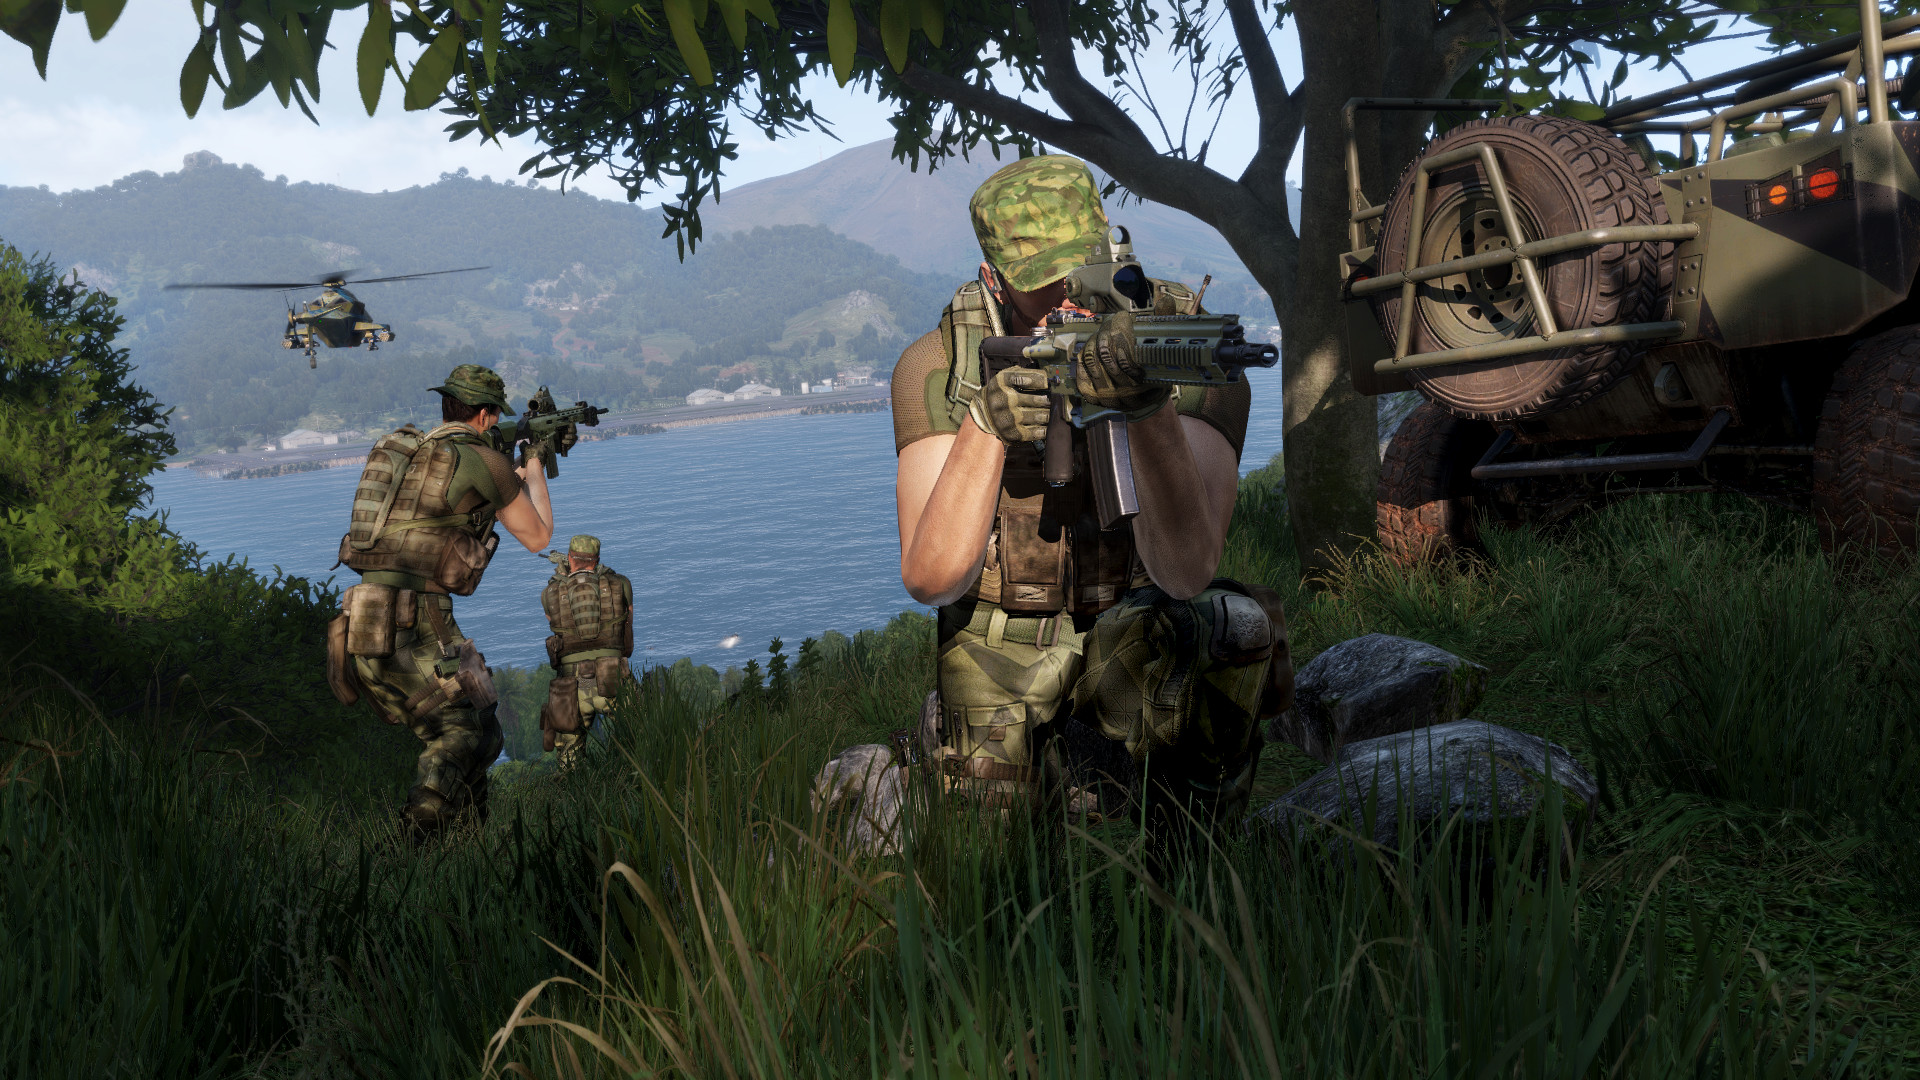 download arma 3 apex-codex cracked full version singlelink iso rar multi 11 language free for pc